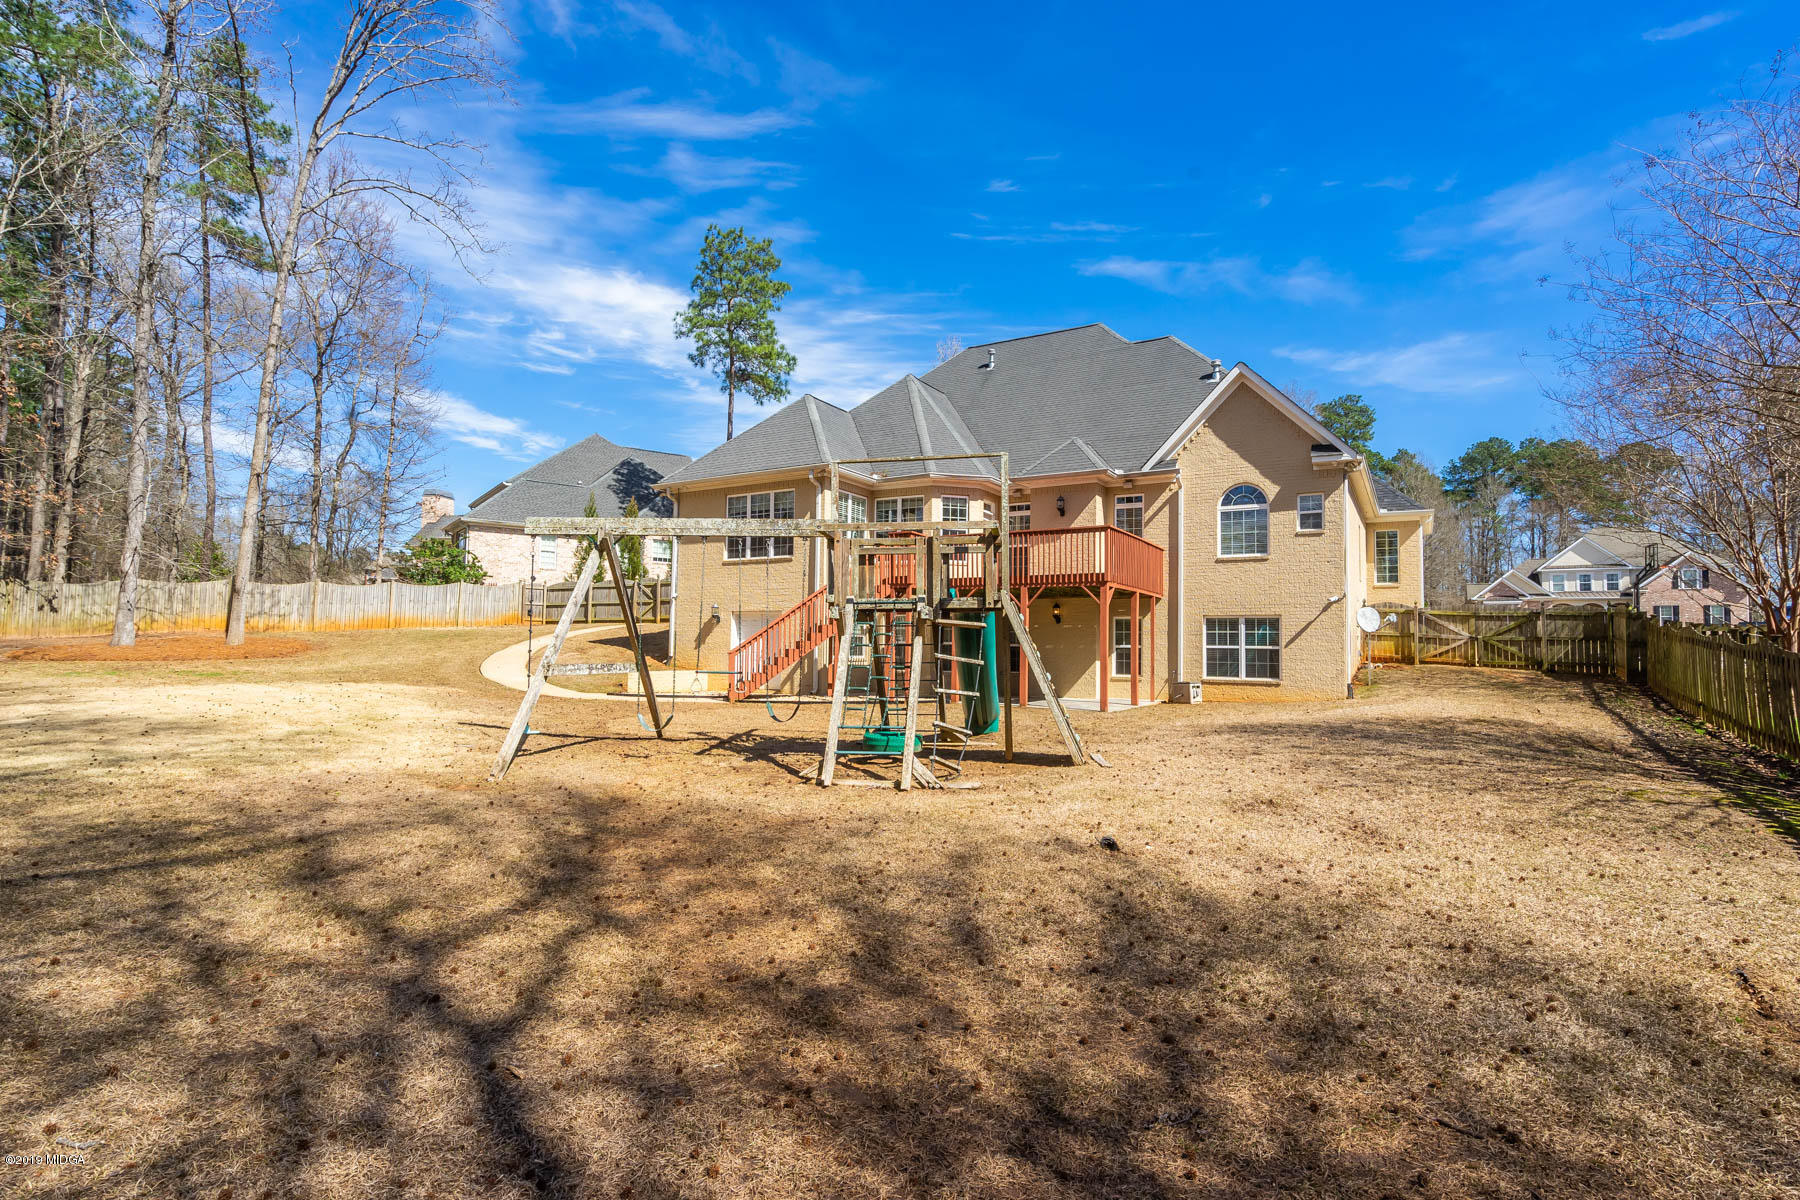 123 Broadleaf Drive, Macon, GA 31210